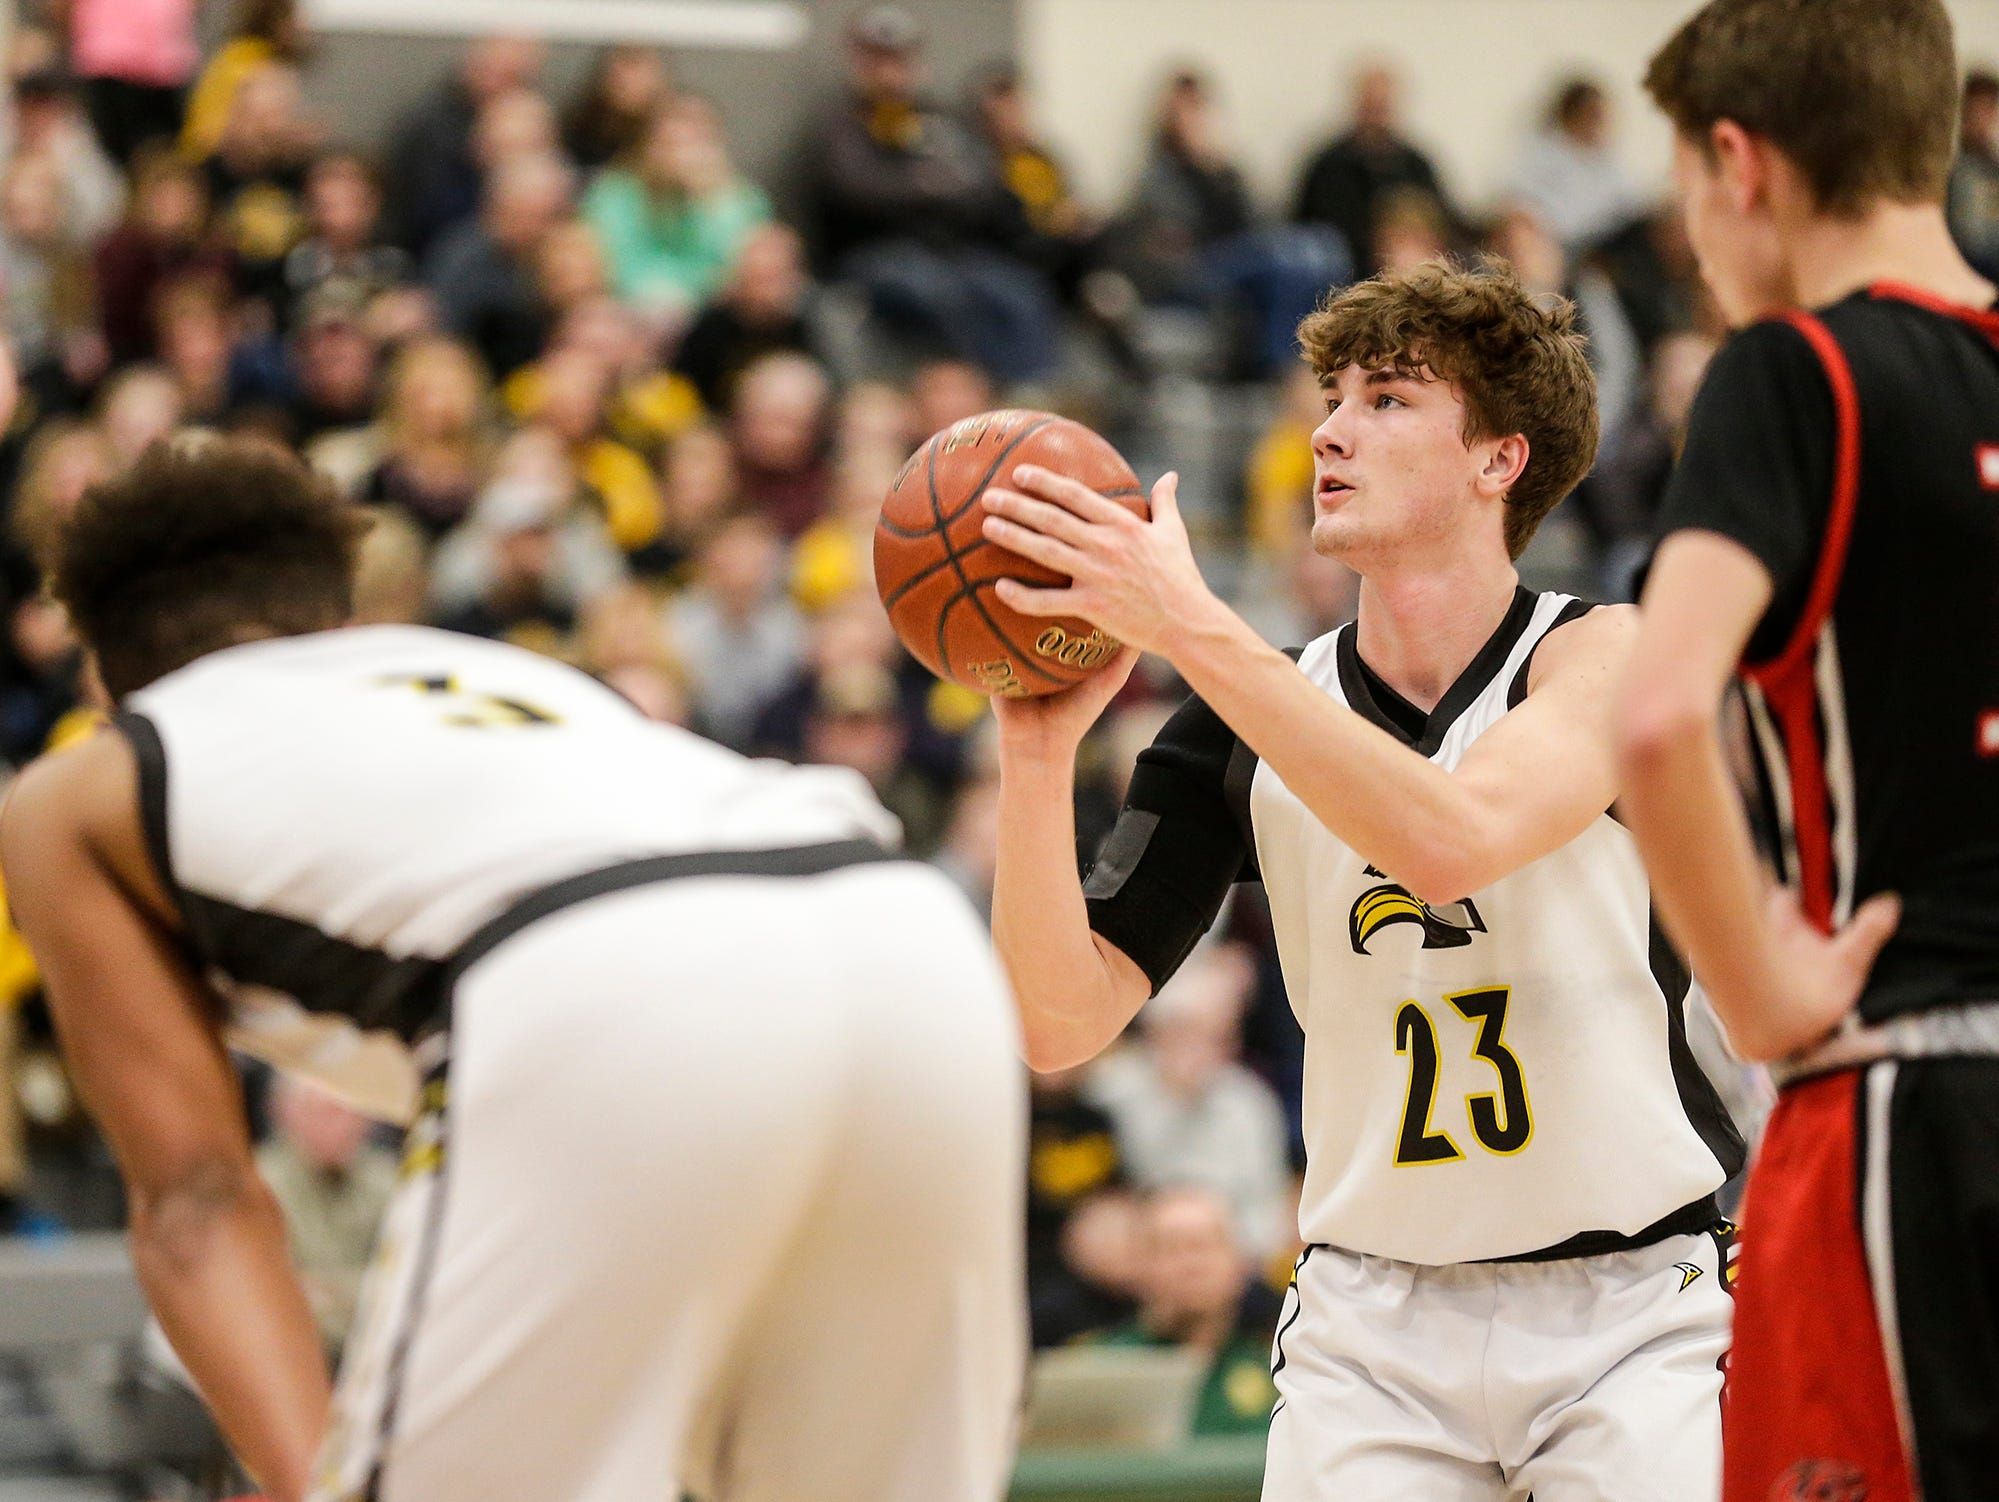 Waupun High School boys basketball's Reece Homan (23) attempts a free throw against Columbus High School during their WIAA division 3 sectional semi-final game Thursday, March 7, 2019 in Beaver Dam, Wis. Waupun won the game 79-36. Doug Raflik/USA TODAY NETWORK-Wisconsin